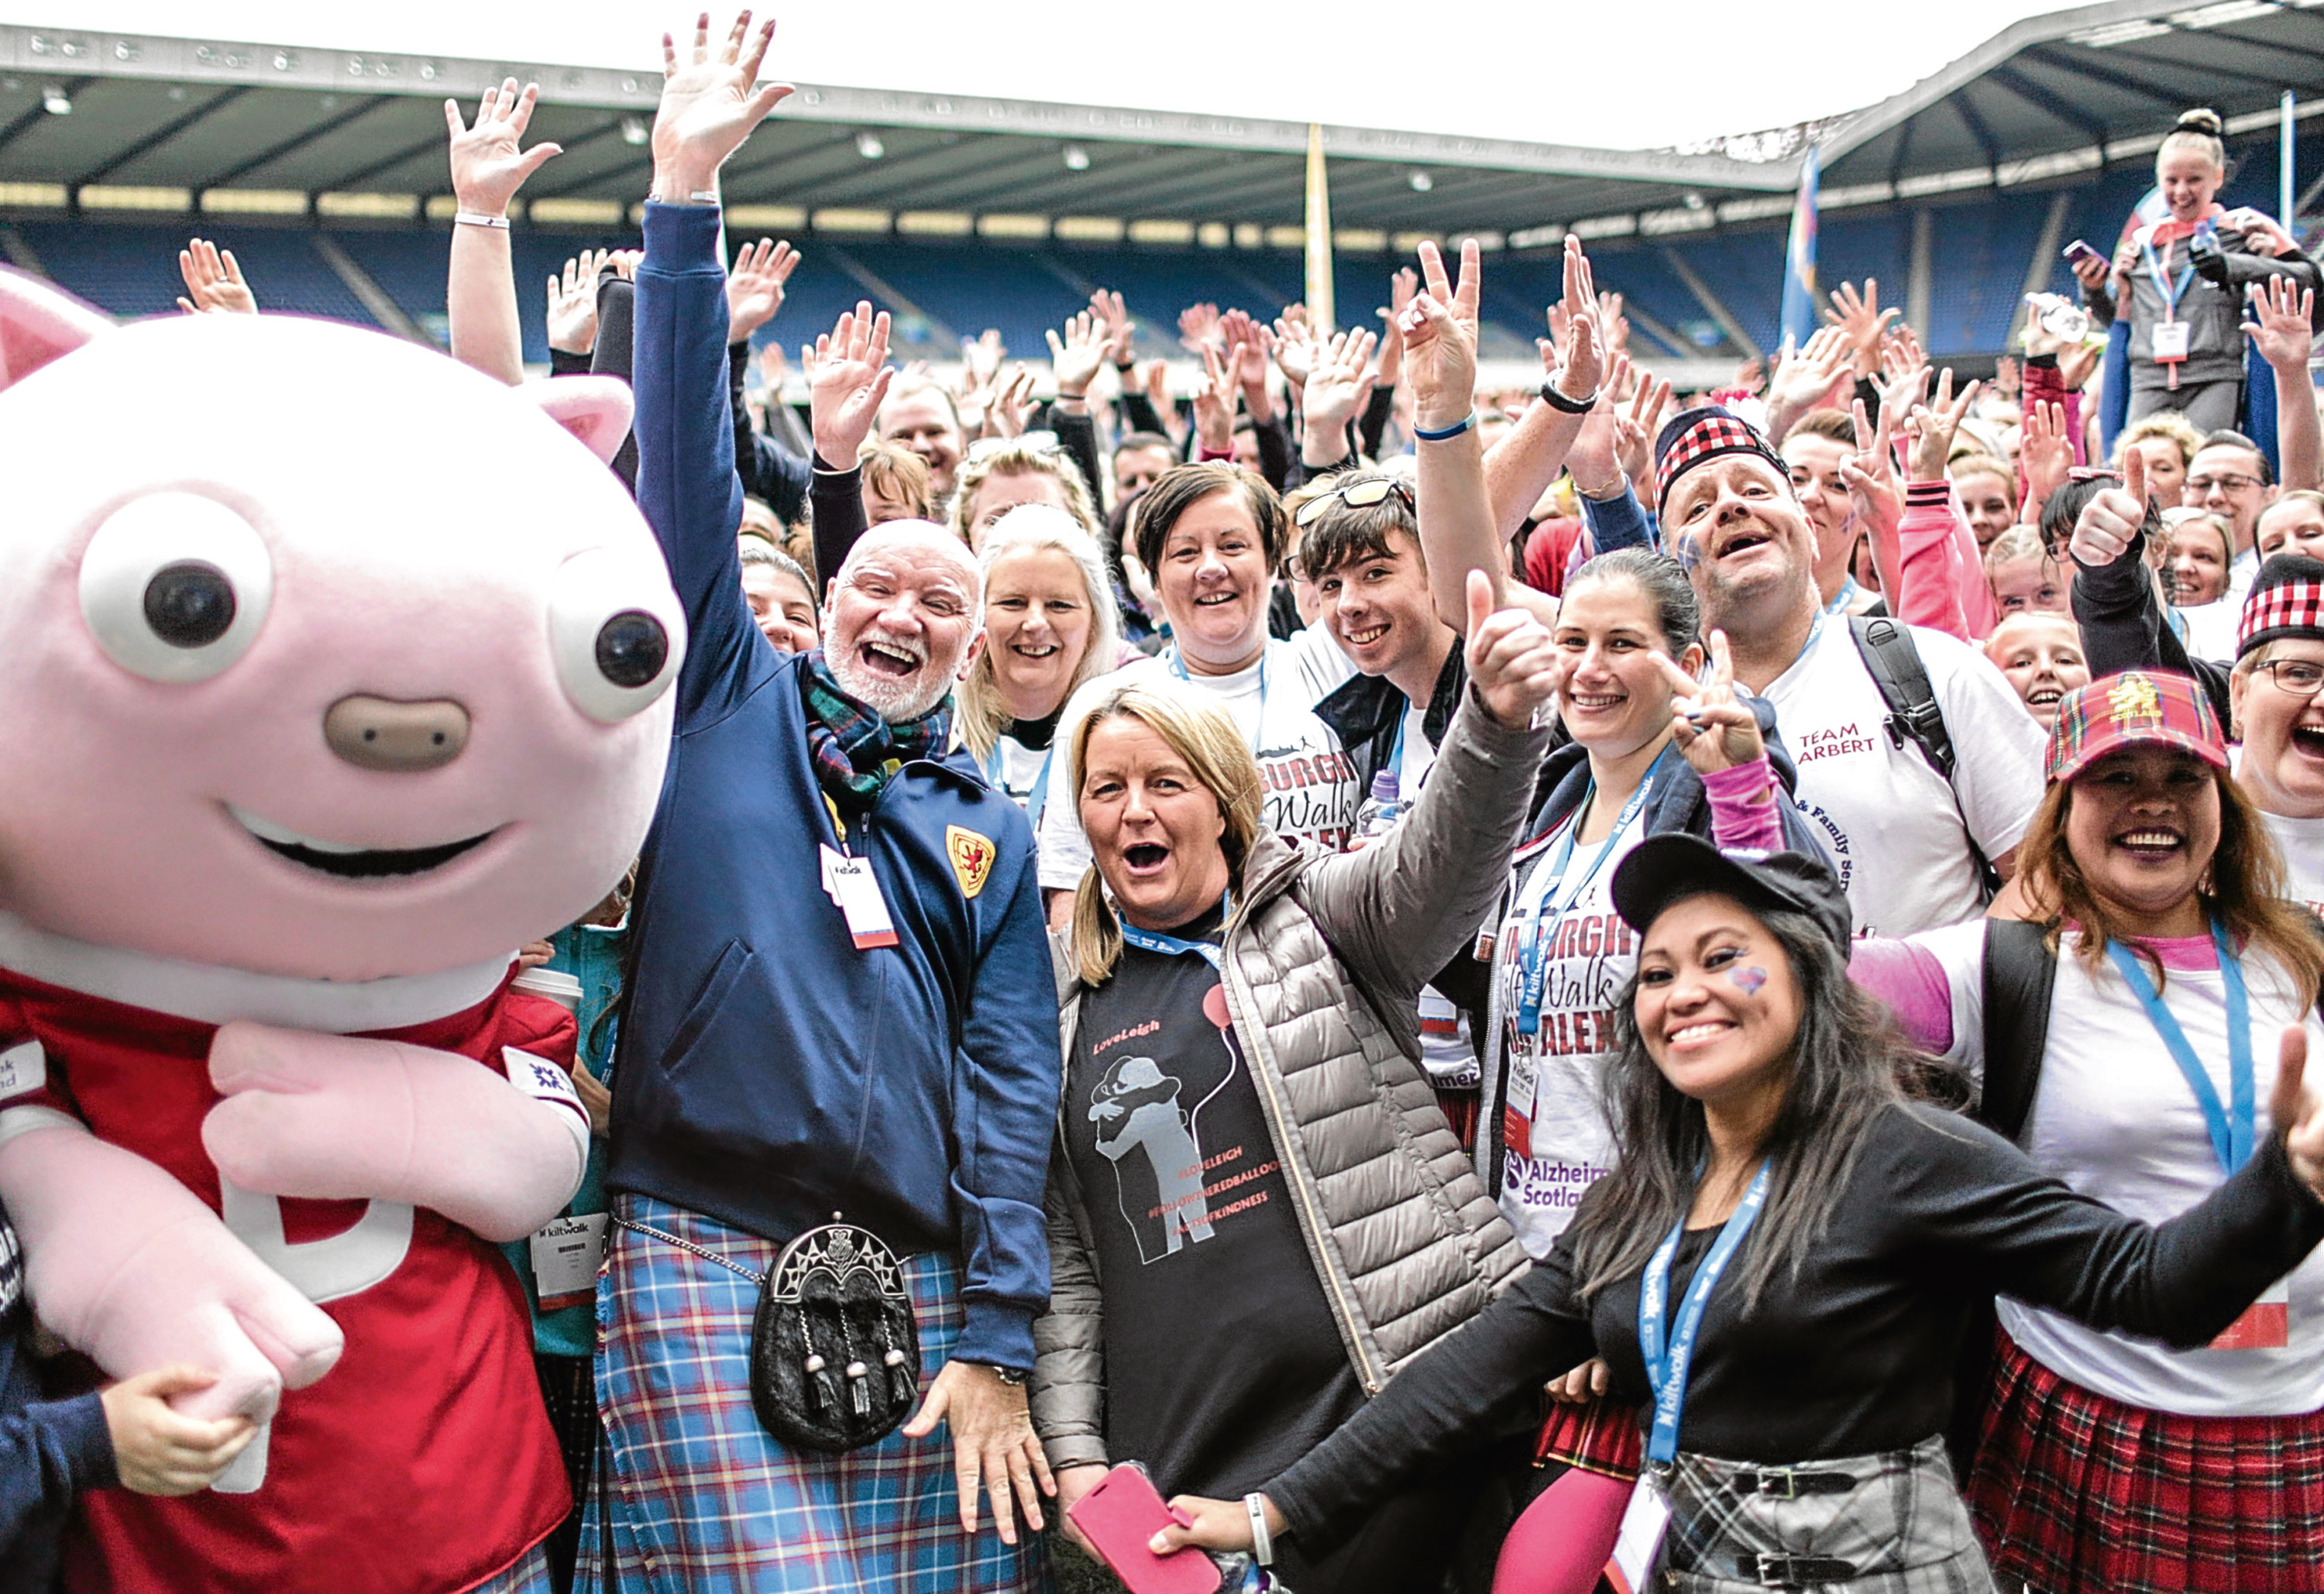 Participants in The Kiltwalk